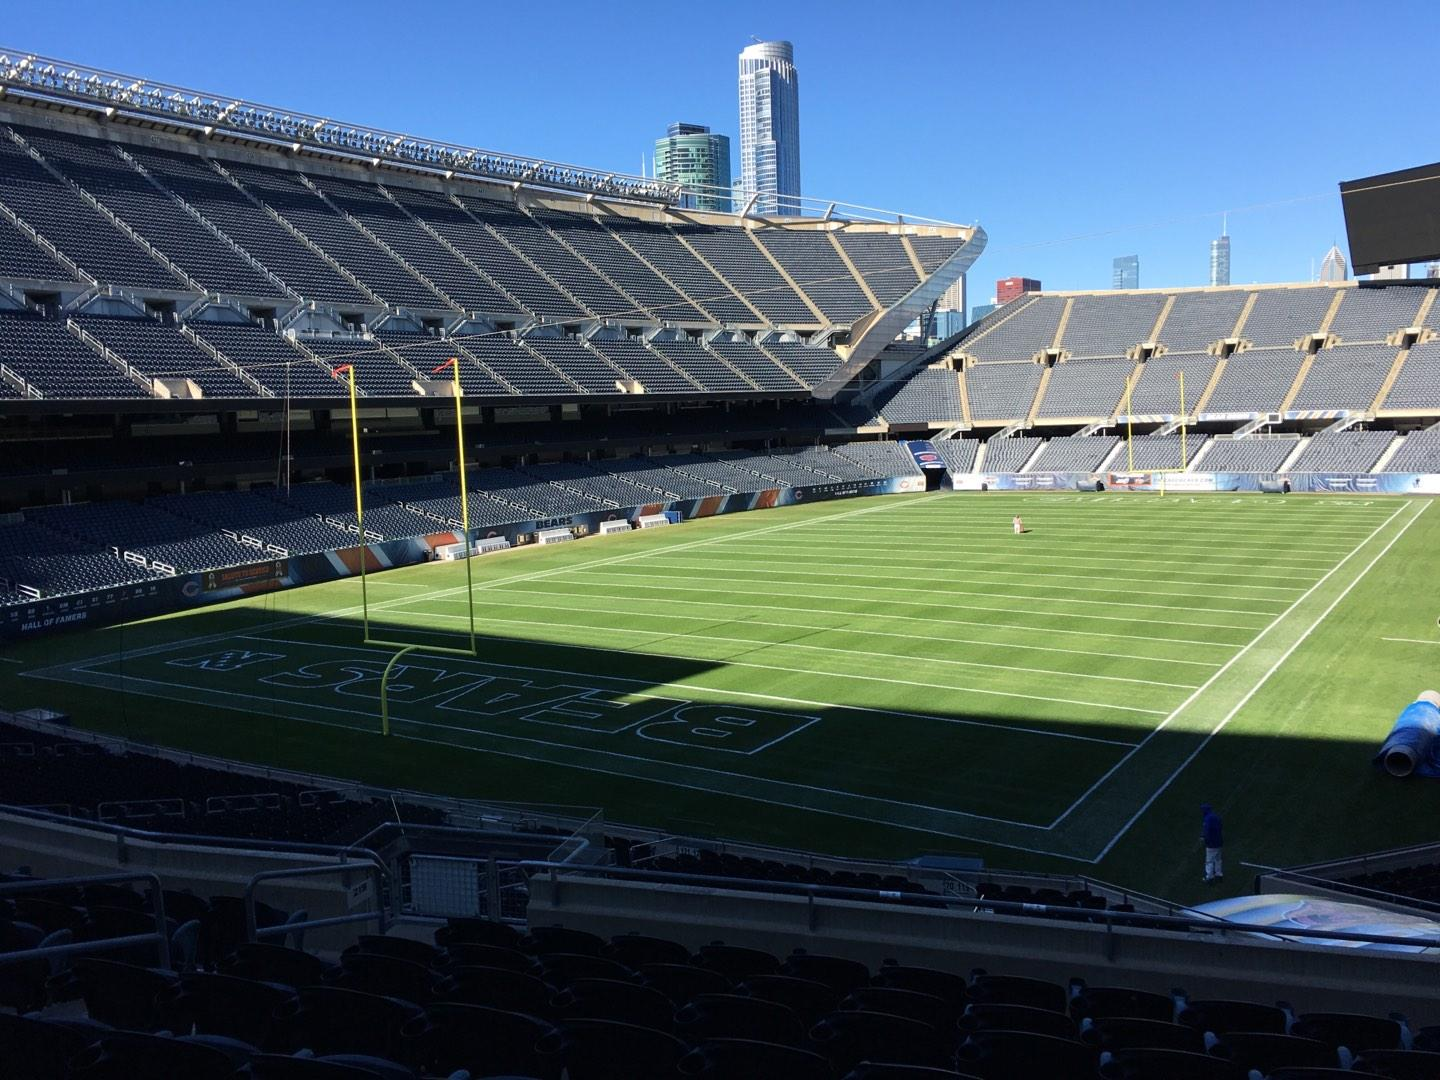 Soldier Field Section 219 Row 9 Seat 9